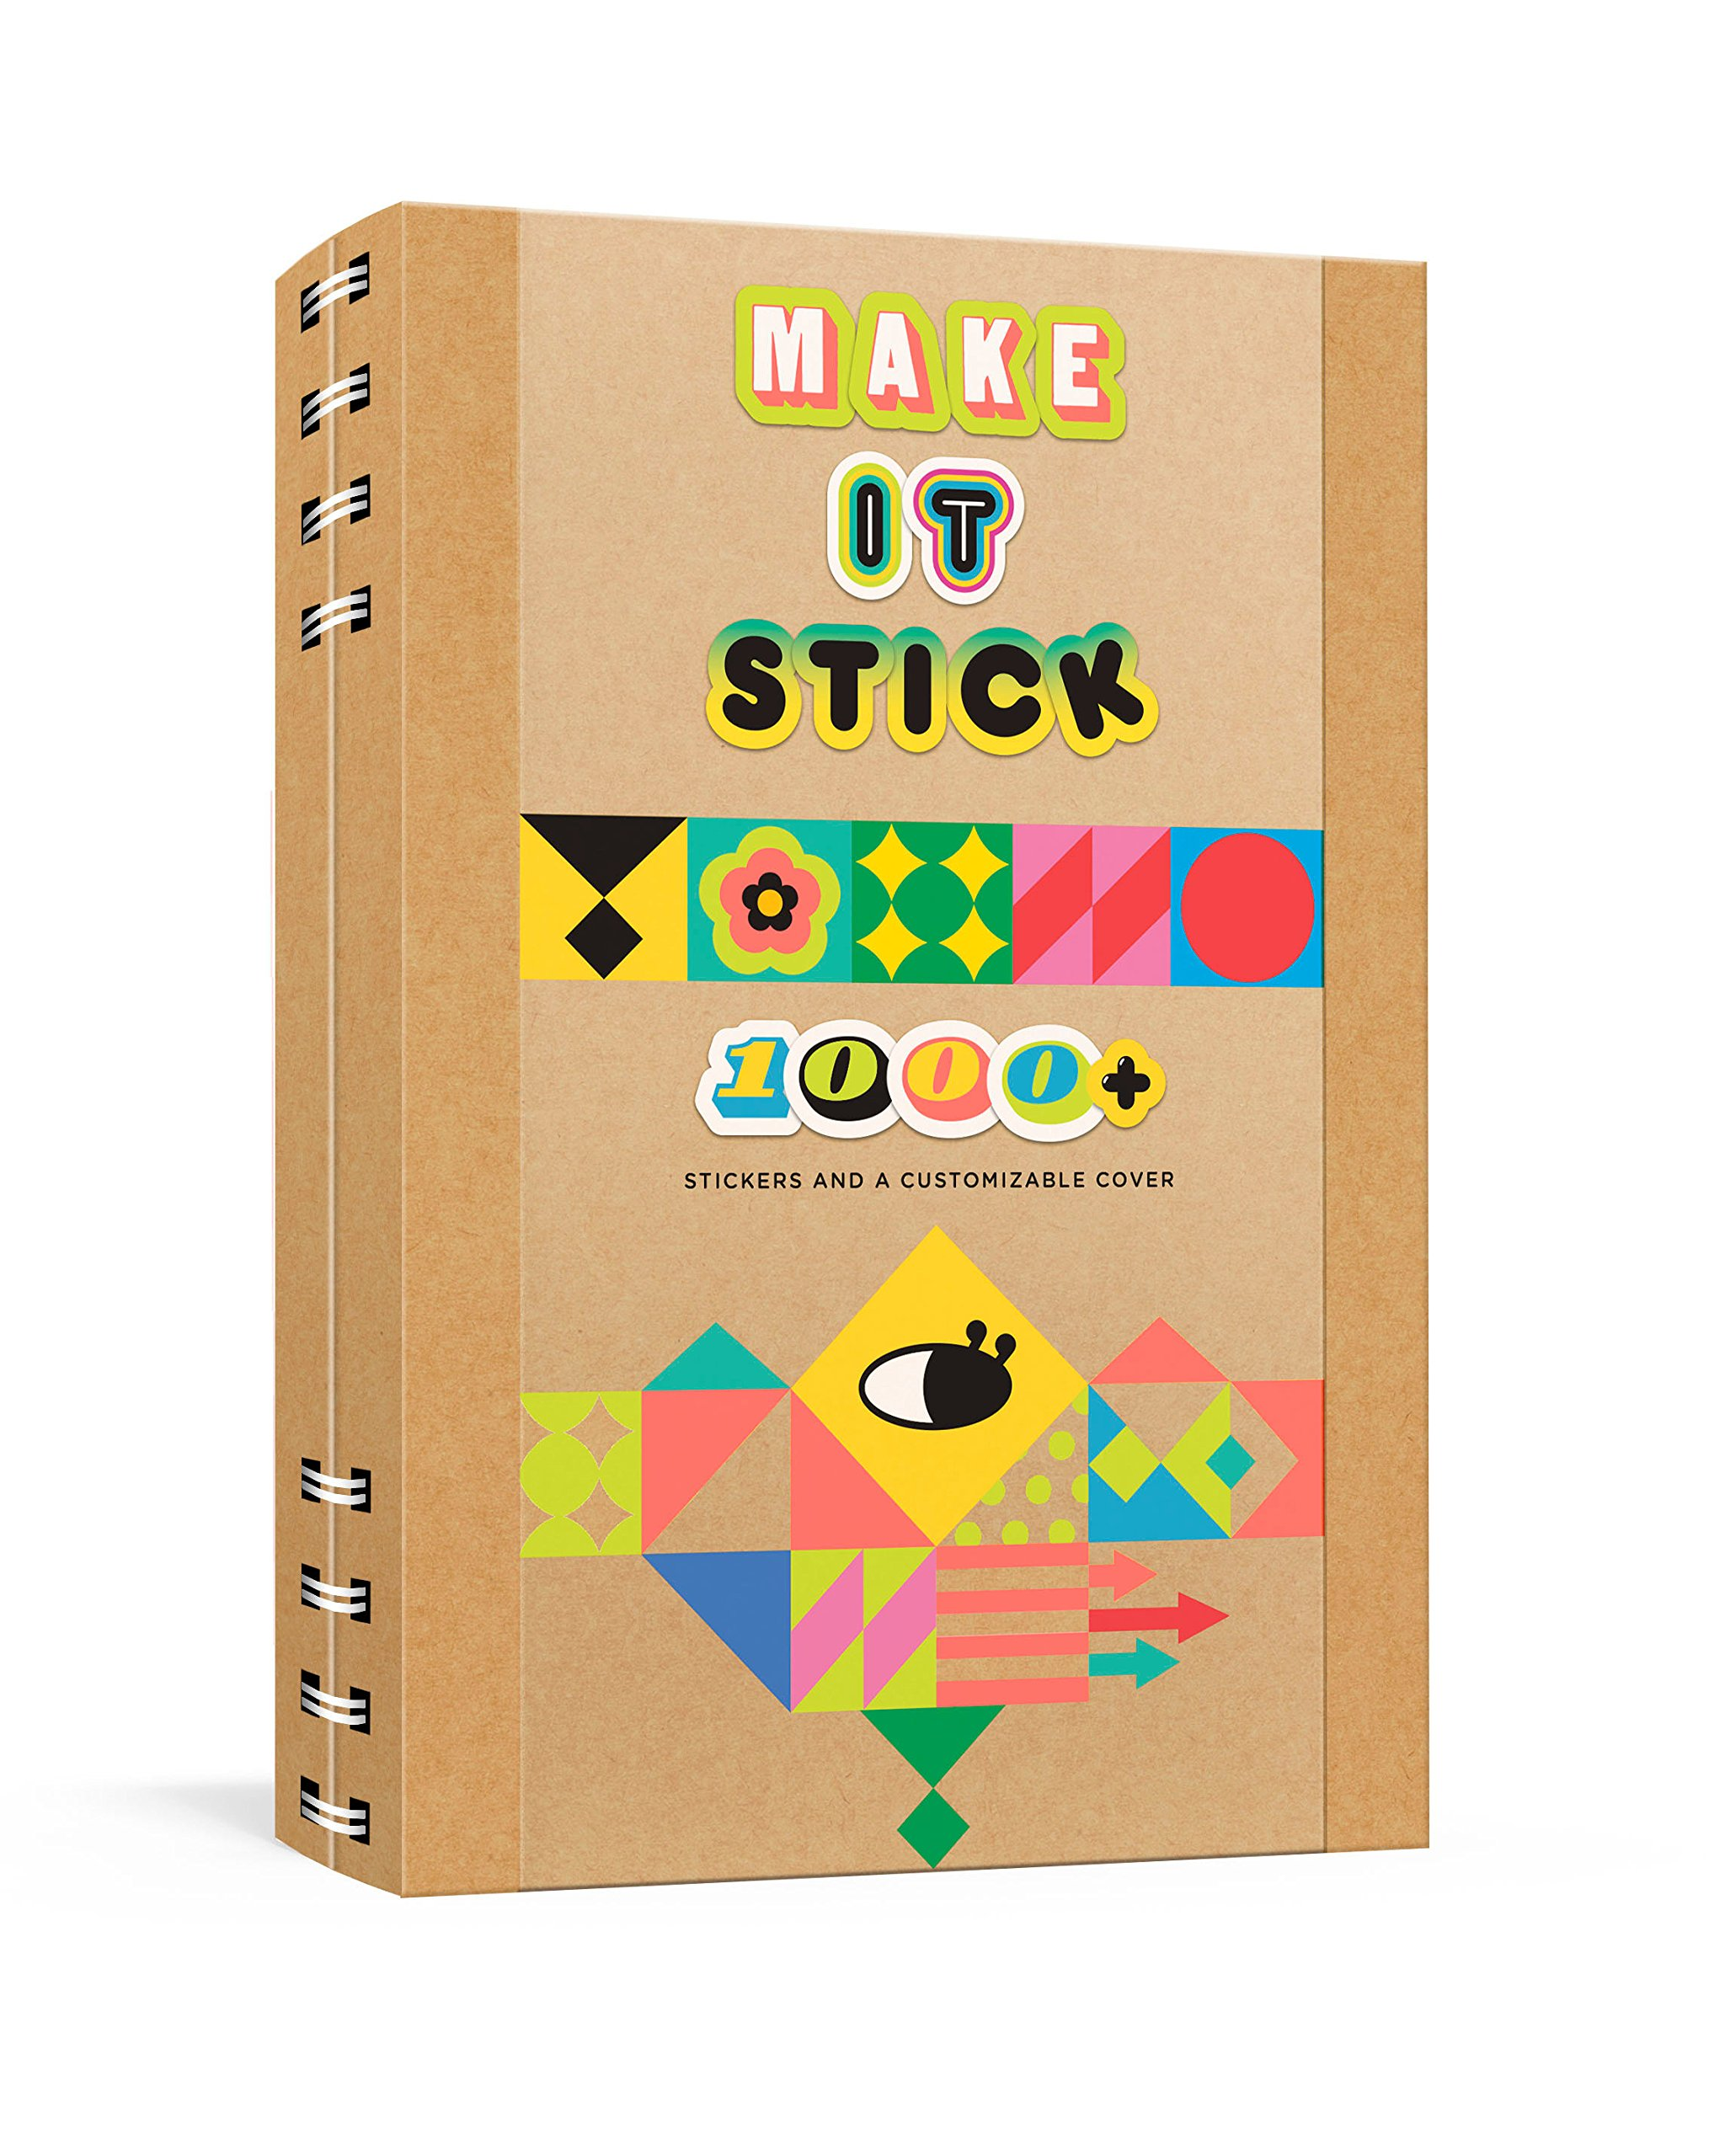 Make it stick notebook 1000 stickers and a customizable cover diary april 24 2018